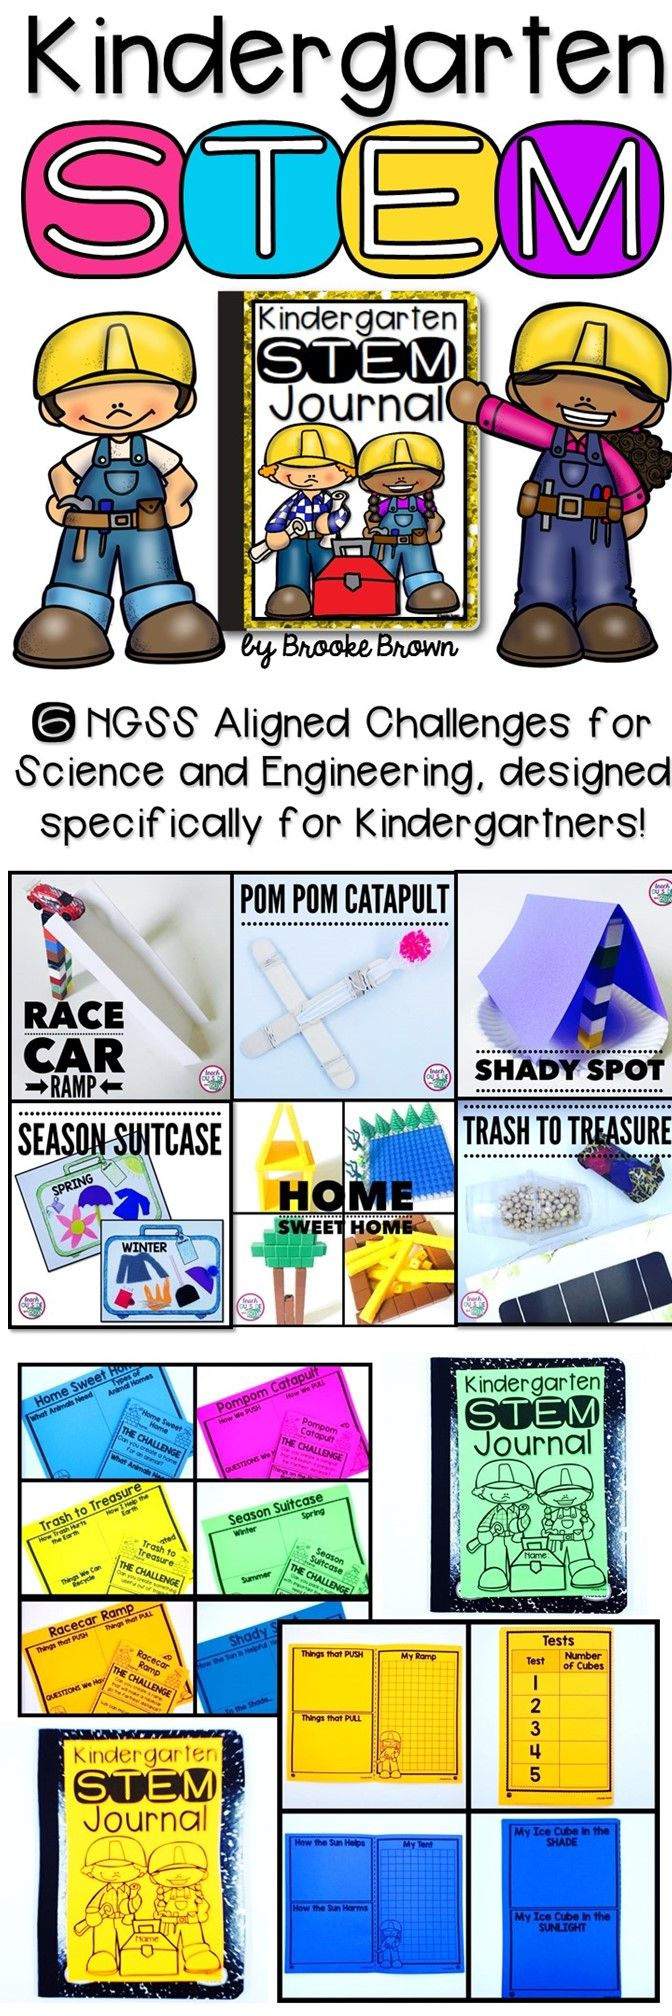 6 NGSS Aligned STEM Challenges designed specifically for Kinders! Covers…